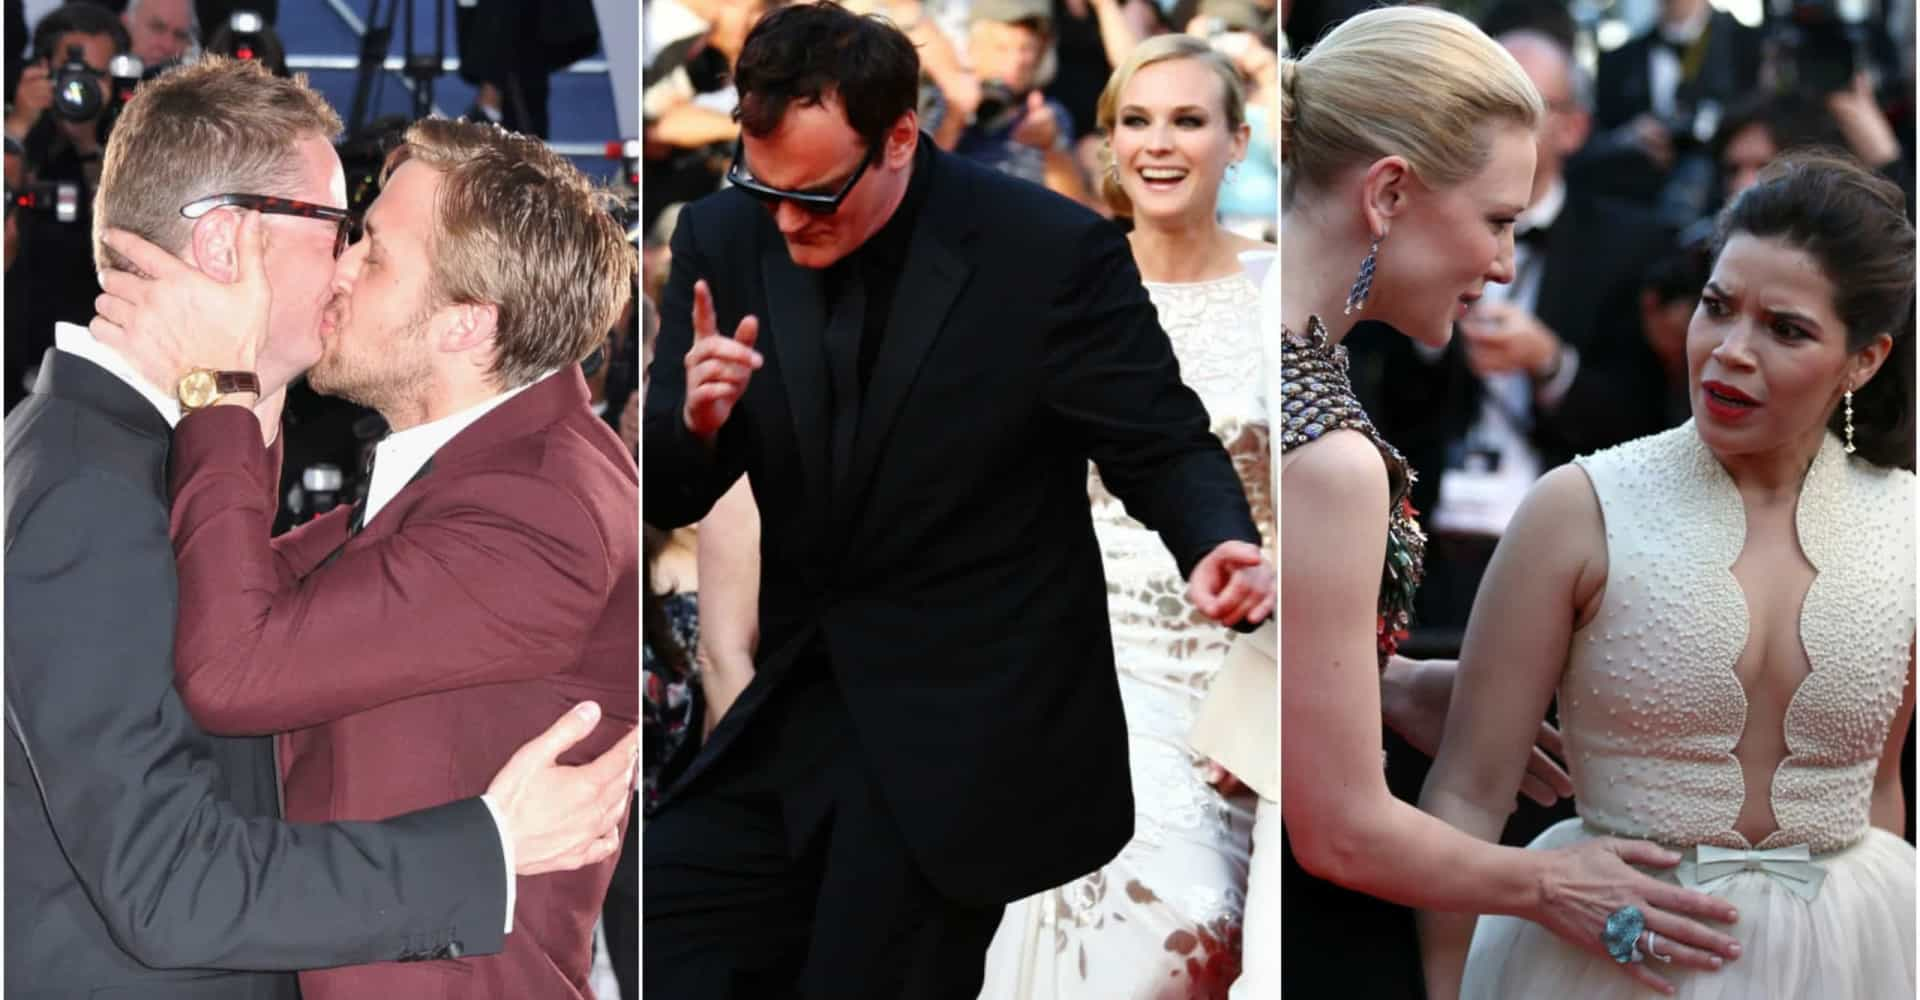 Cannes Film Festival: the most iconic candid photos